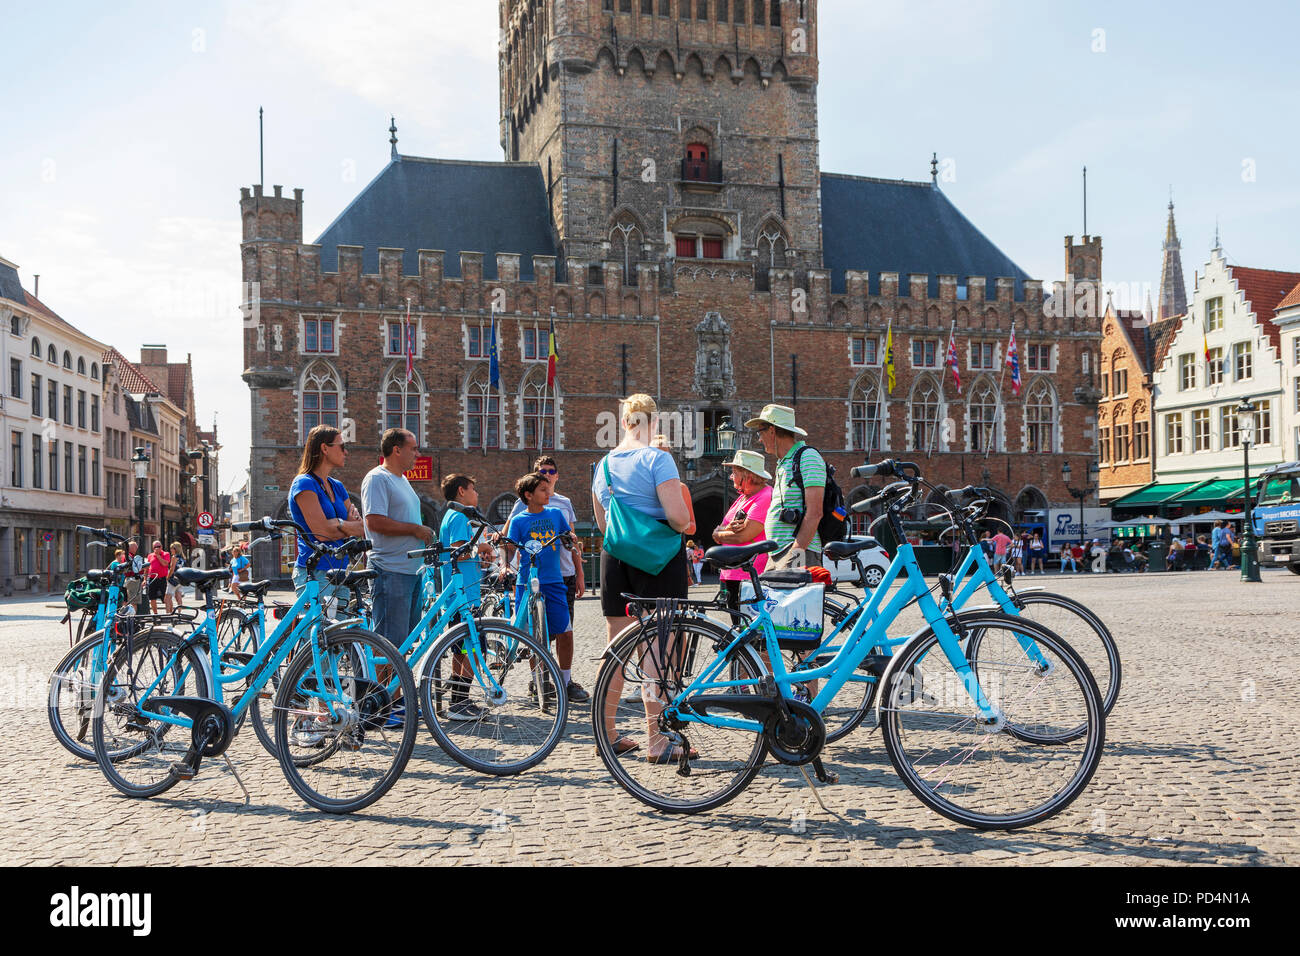 Tourists in Markt Square outside the Bruges Belfry on a cycle tour of Bruges, Belgium - Stock Image